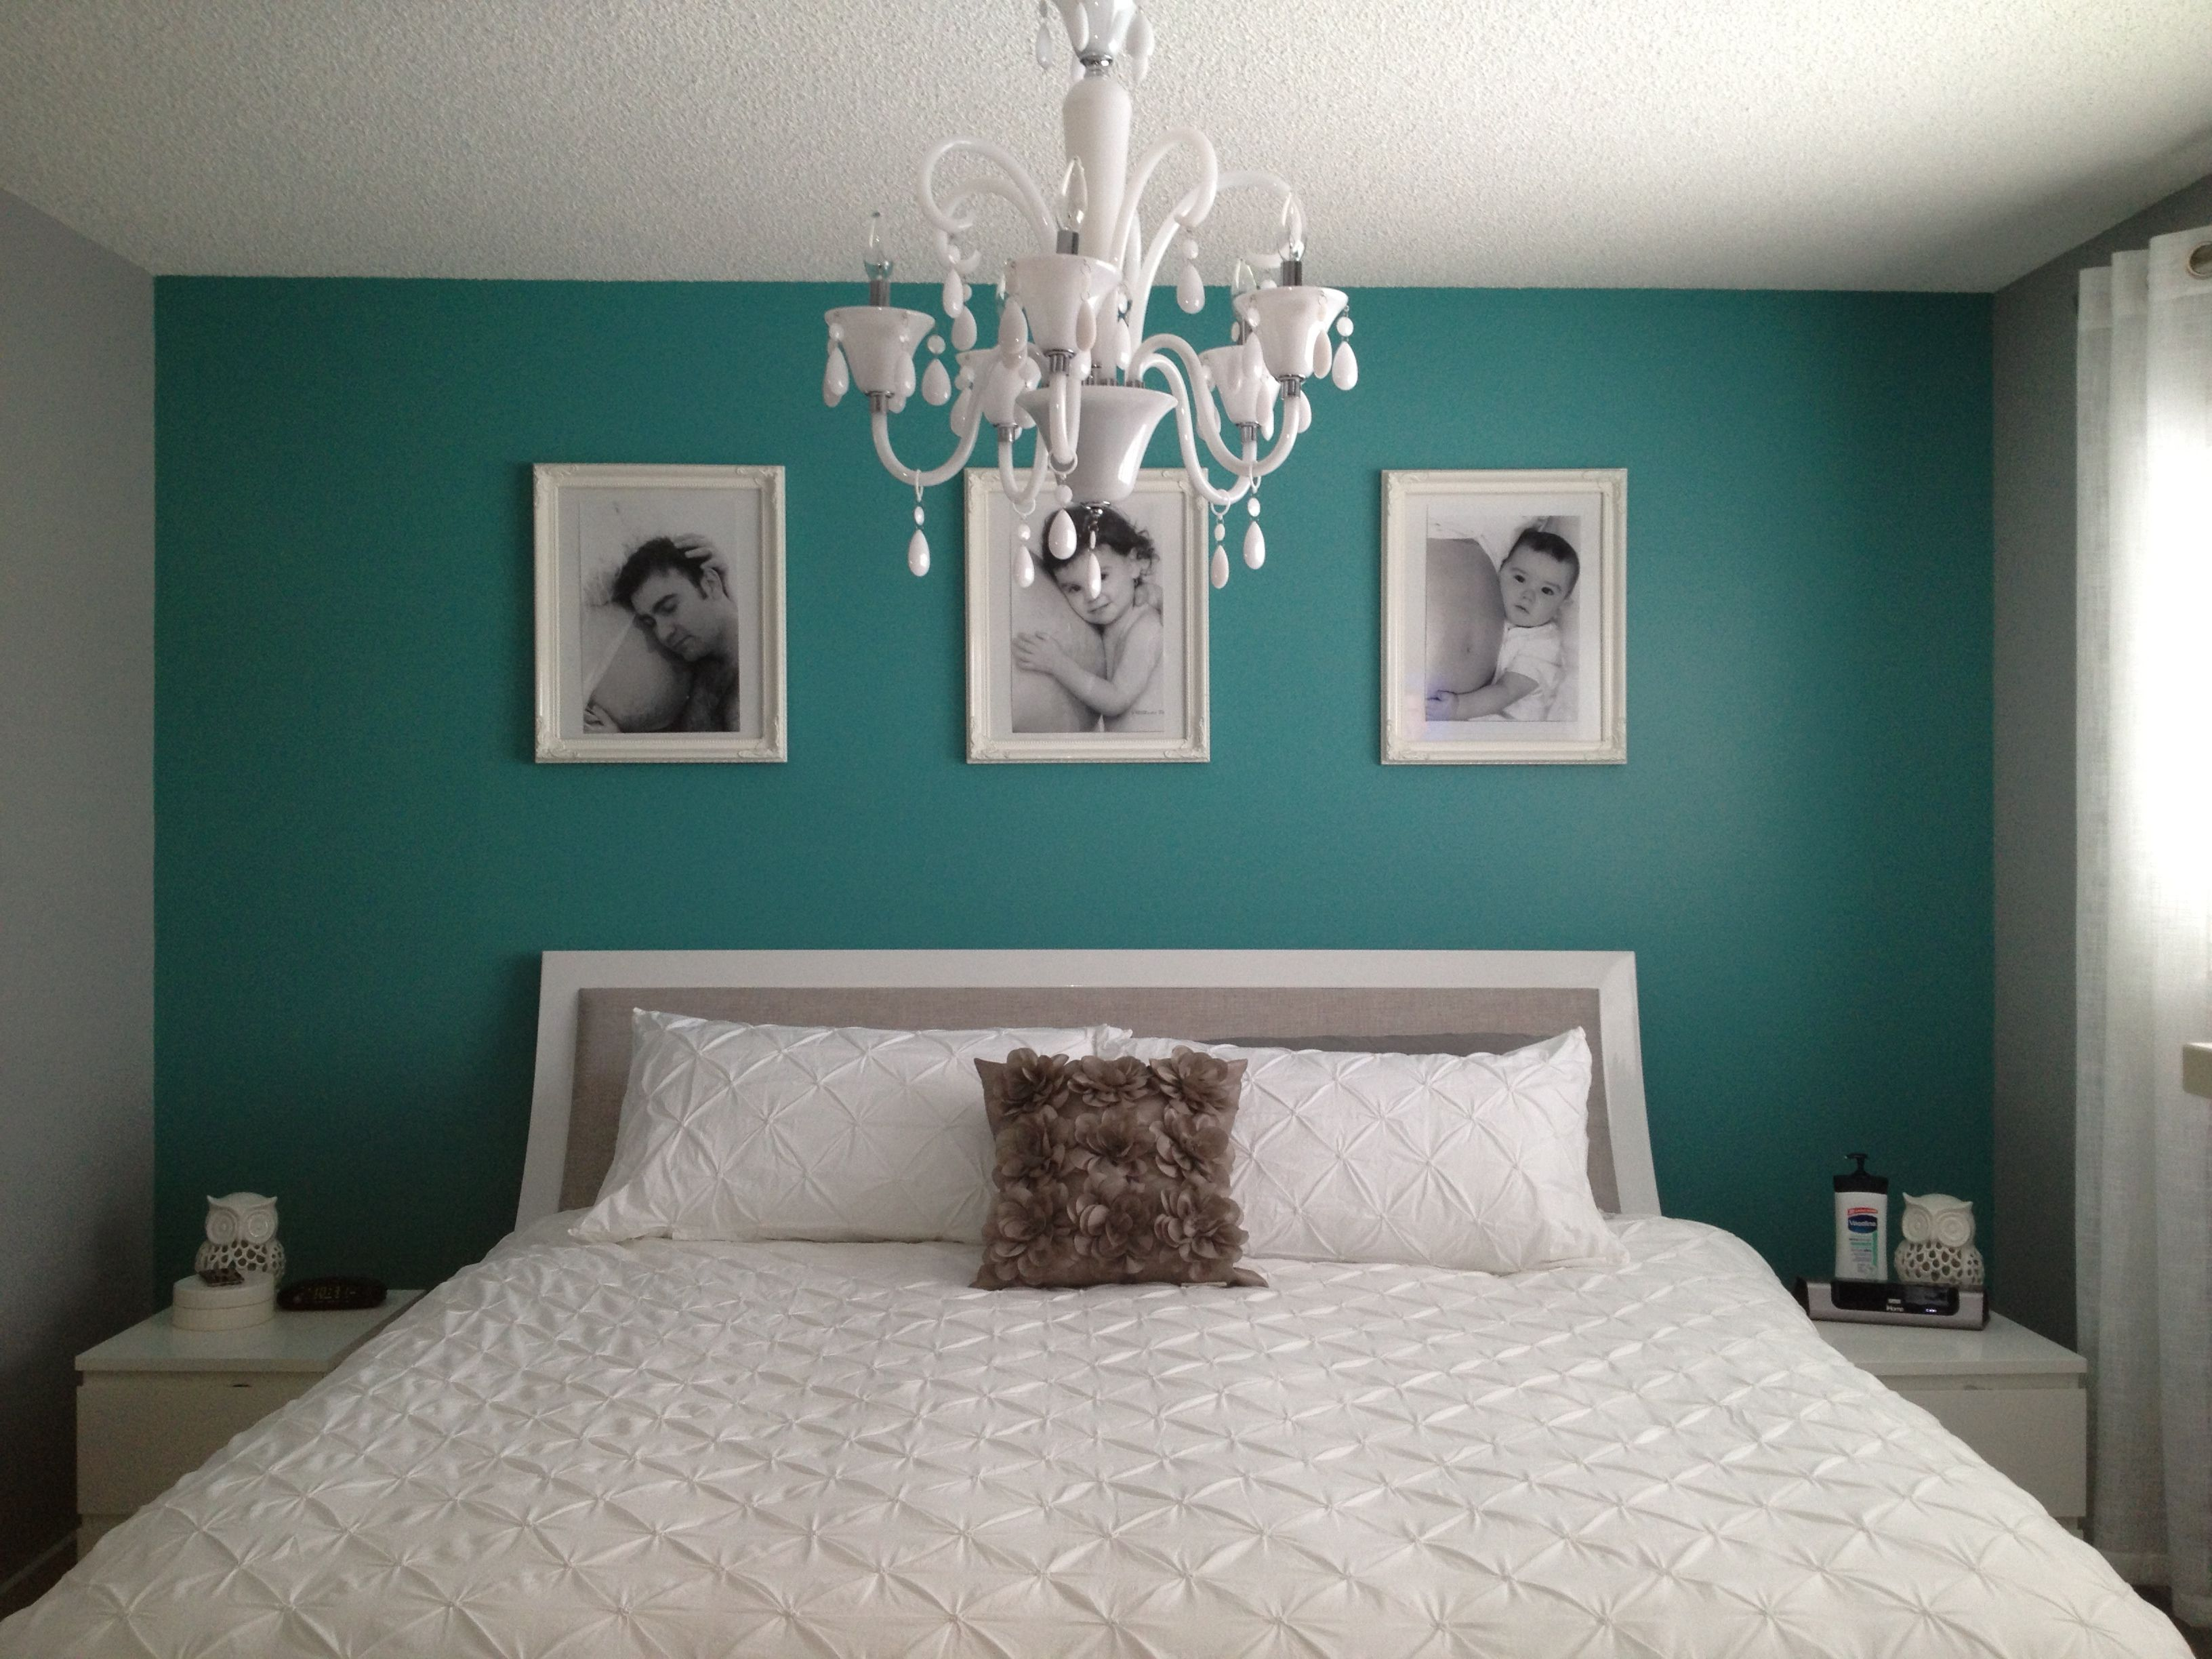 Gray And Teal Bedroom Ideas grey and teal bedroom - love this room, so much so that i am going